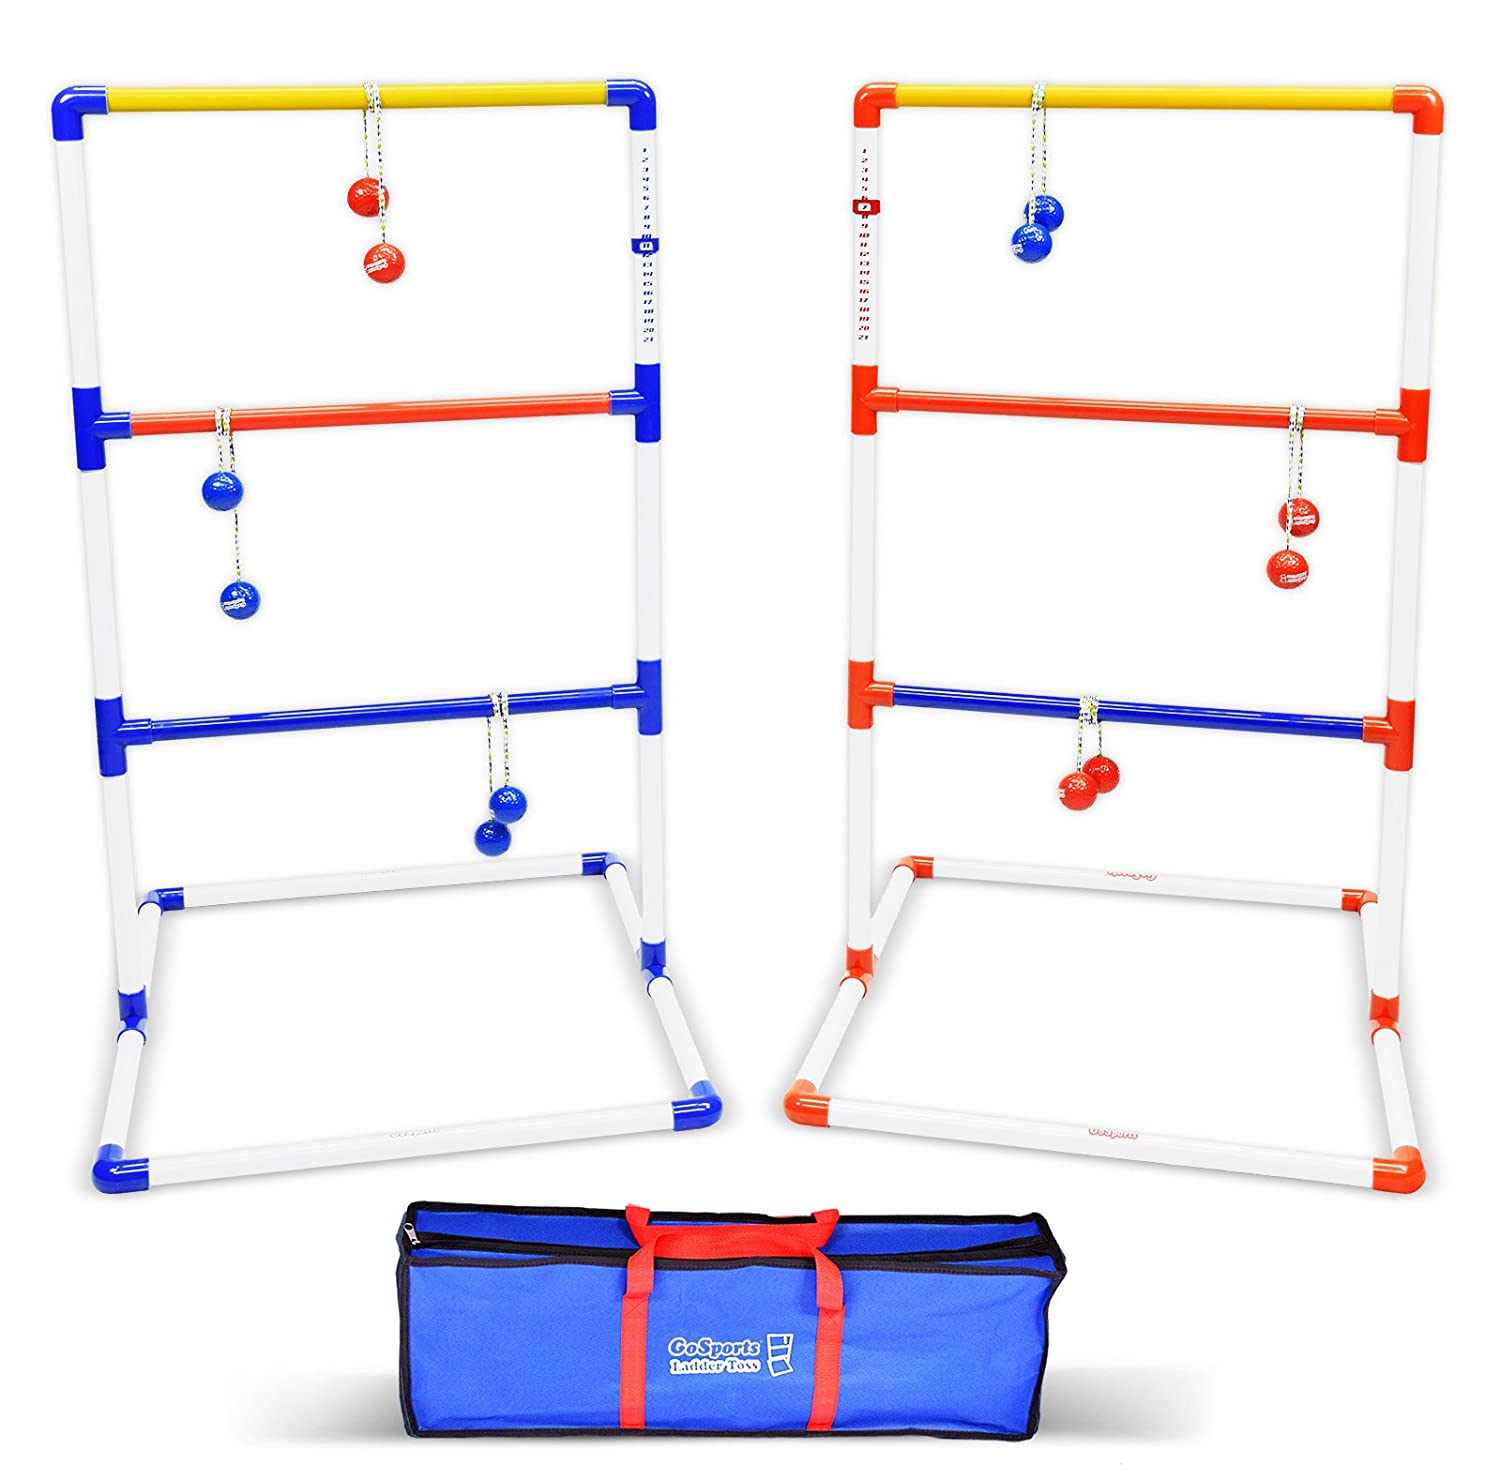 GoSports Premium Ladder Toss Outdoor Game Set with 6 Bolo Balls, Travel Carrying Case and Score Trackers | Choose Between Standard and Giant Size Sets